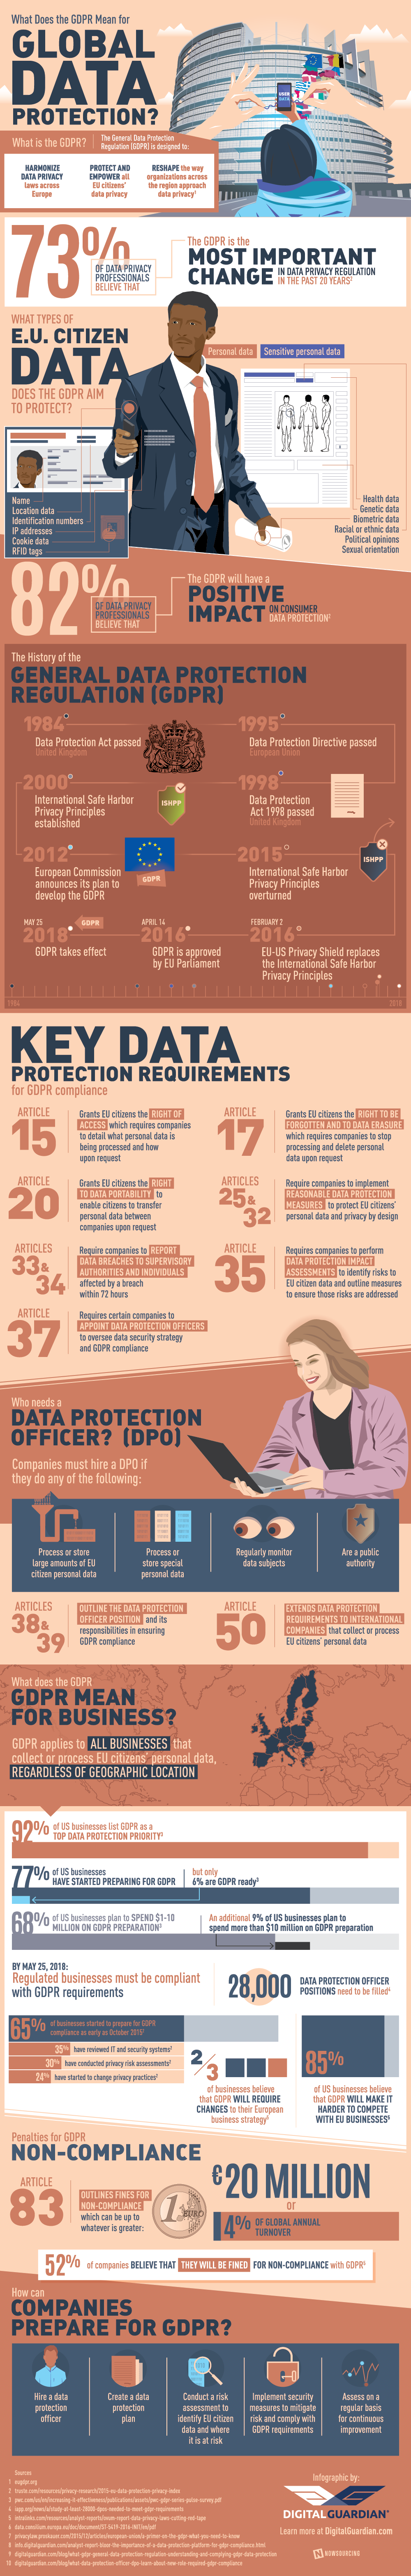 What Does the GDPR Mean for Global Data Protection? - #infographic